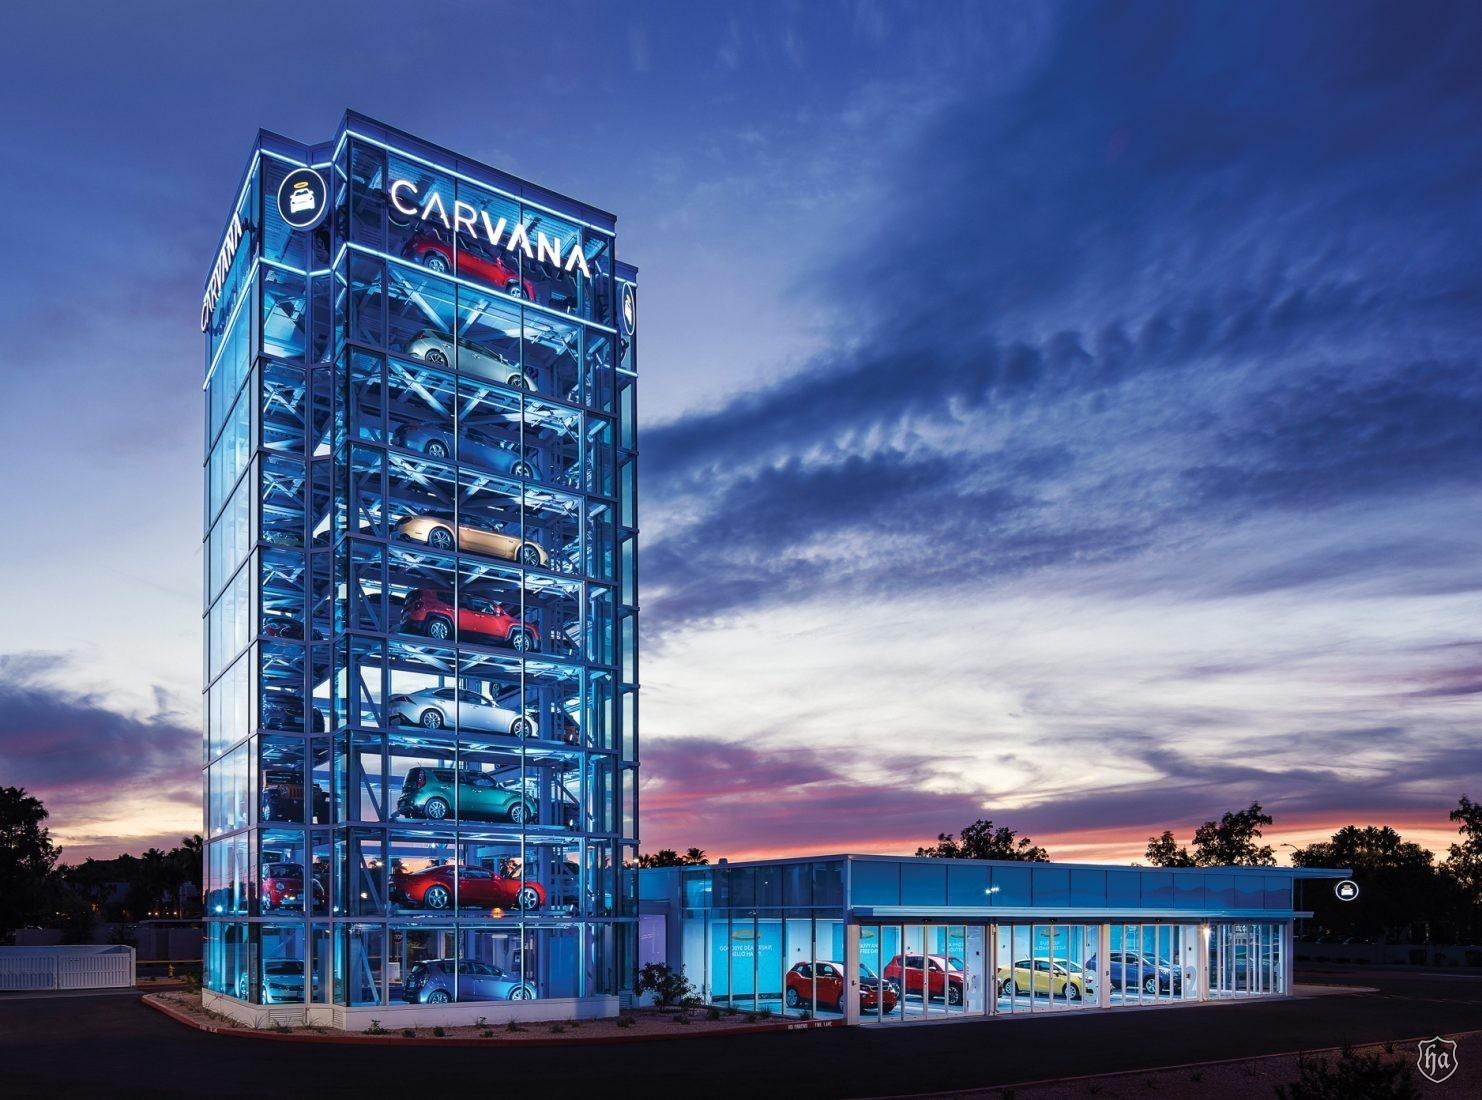 Acura Of Tempe >> Altered Carbon Online Car Sales Company Carvana Opens Largest Car Vending Machine in Tempe ...